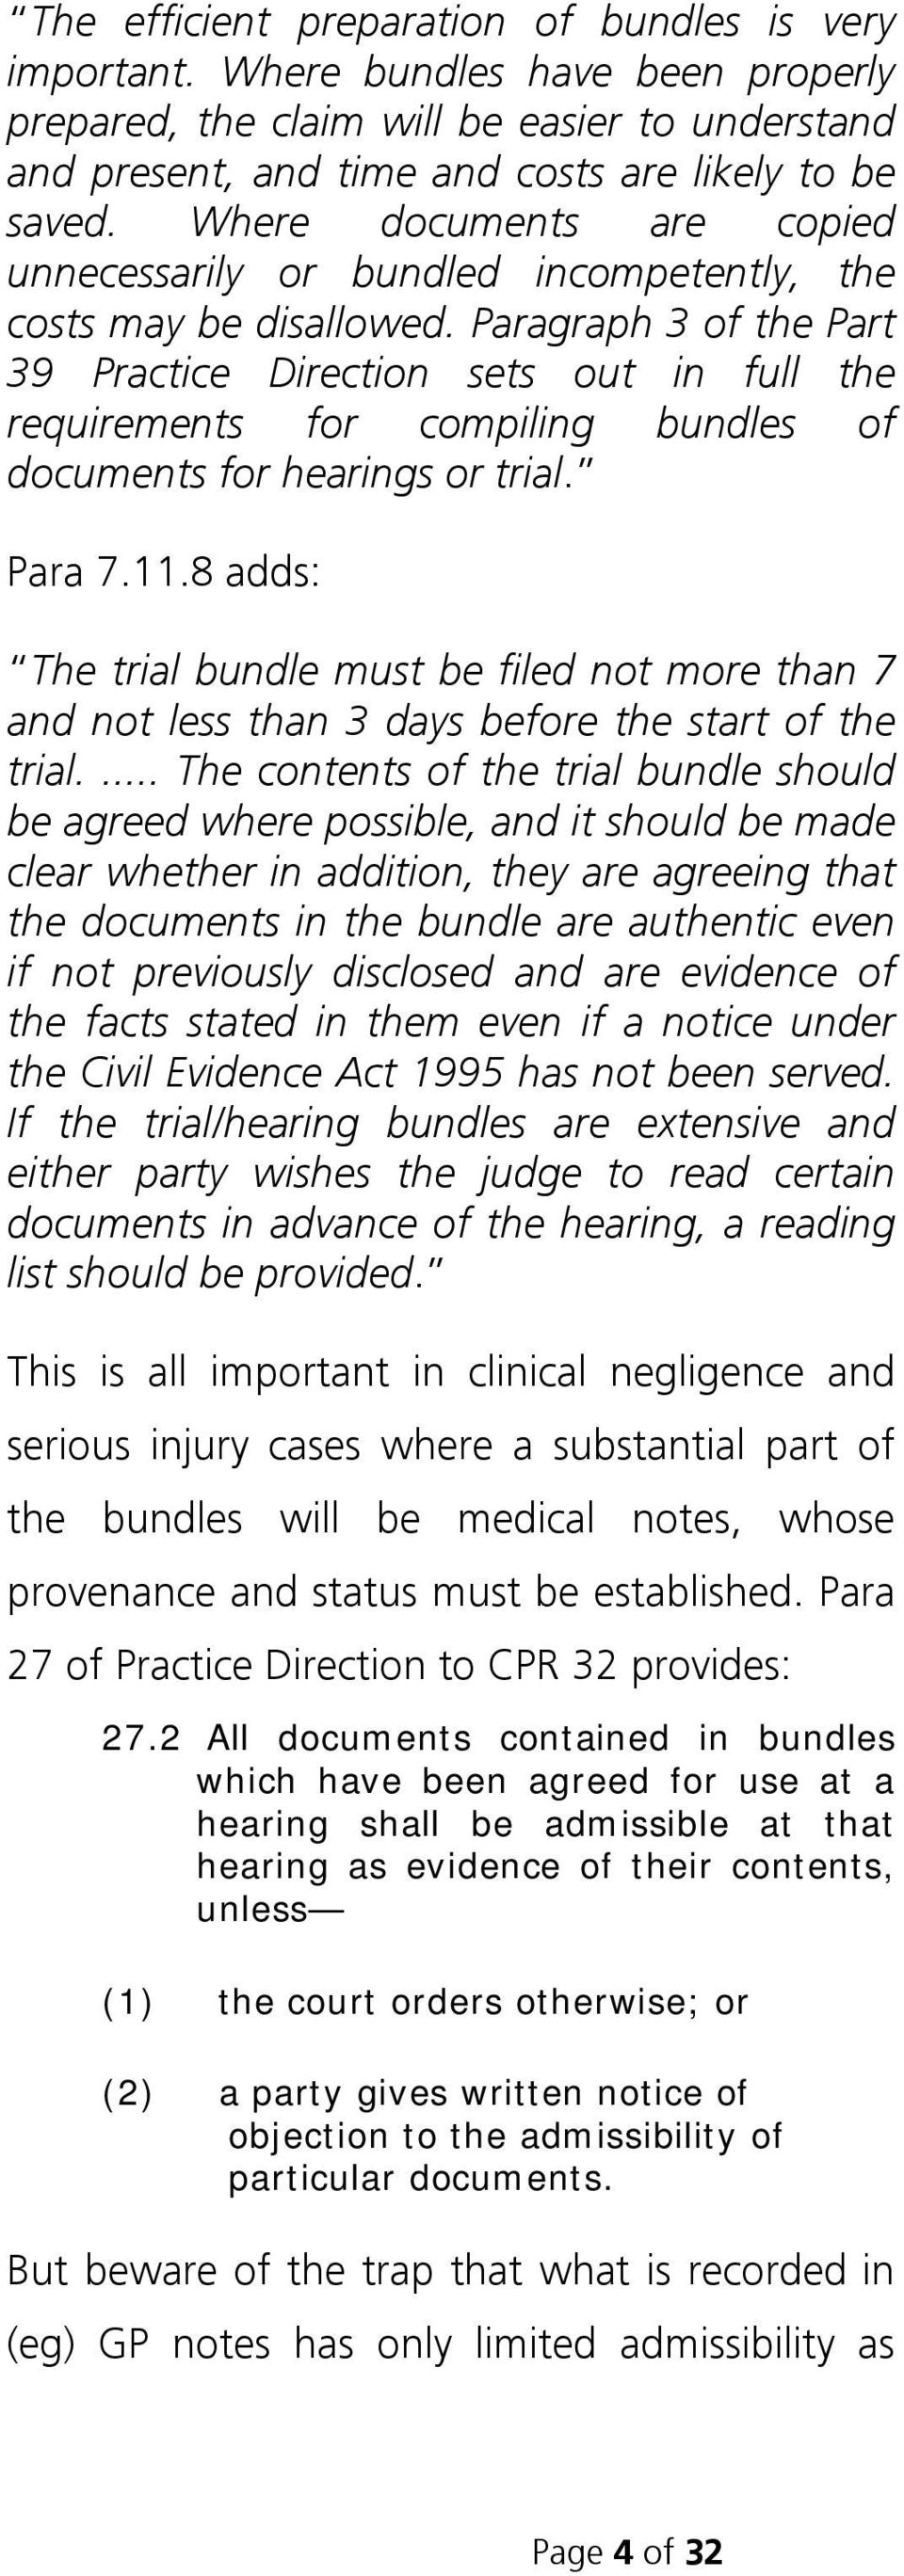 Paragraph 3 of the Part 39 Practice Direction sets out in full the requirements for compiling bundles of documents for hearings or trial. Para 7.11.